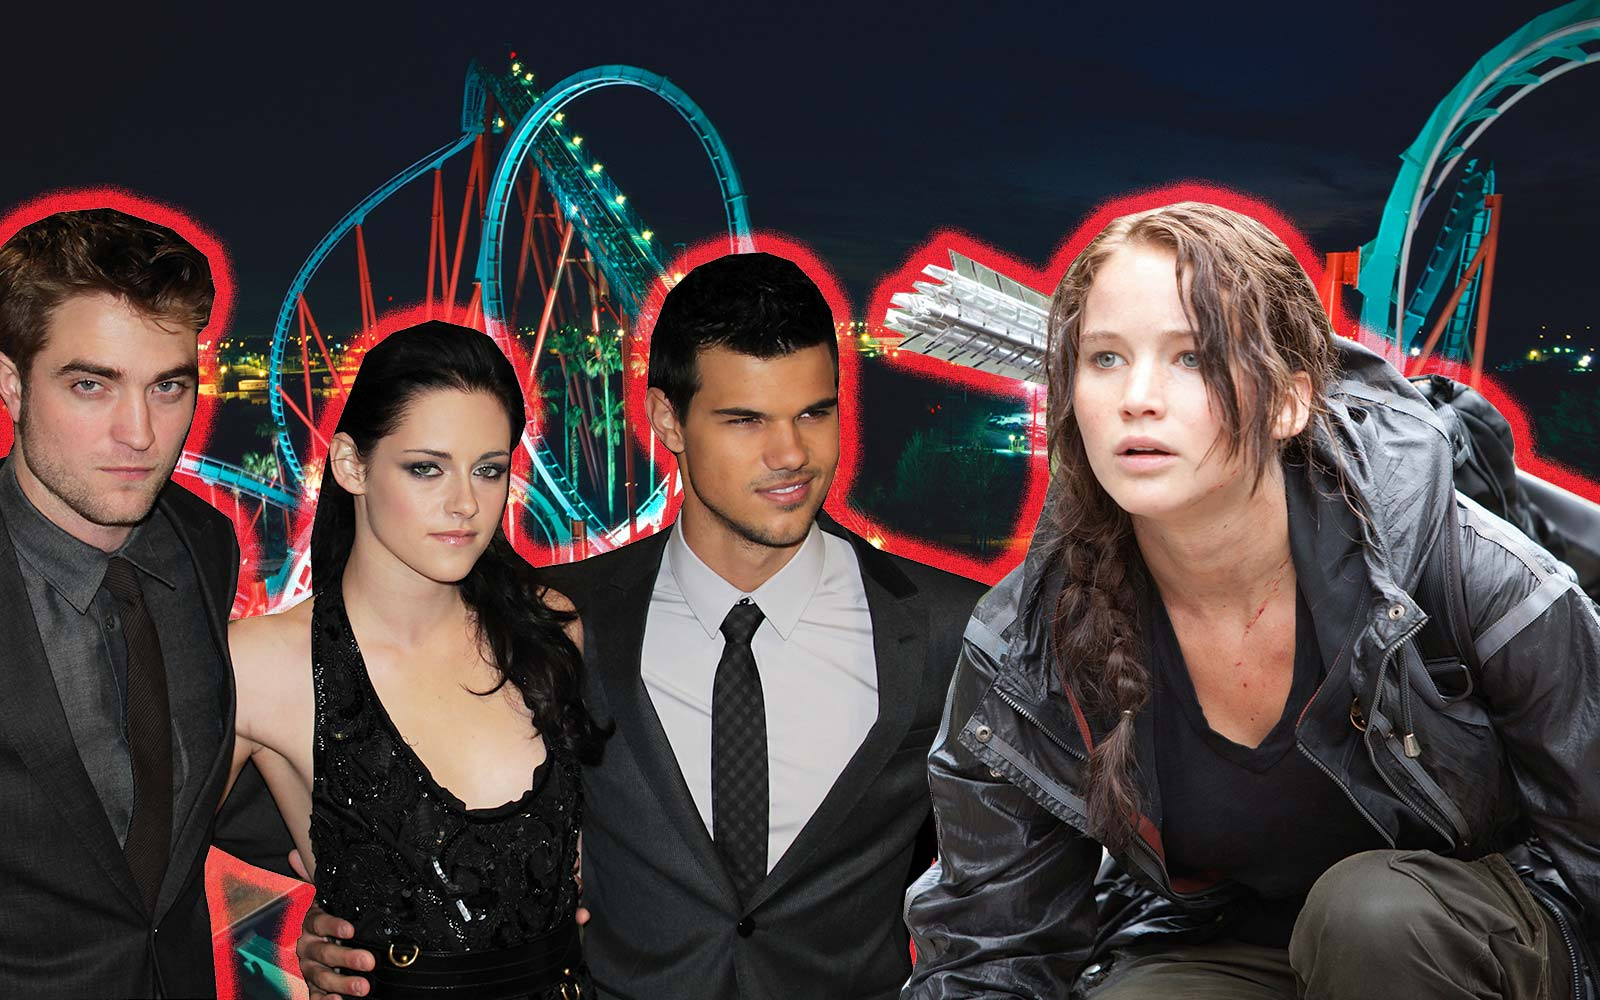 Lionsgate's New Theme Park Will Bring 'The Hunger Games' and 'Twilight' to Life